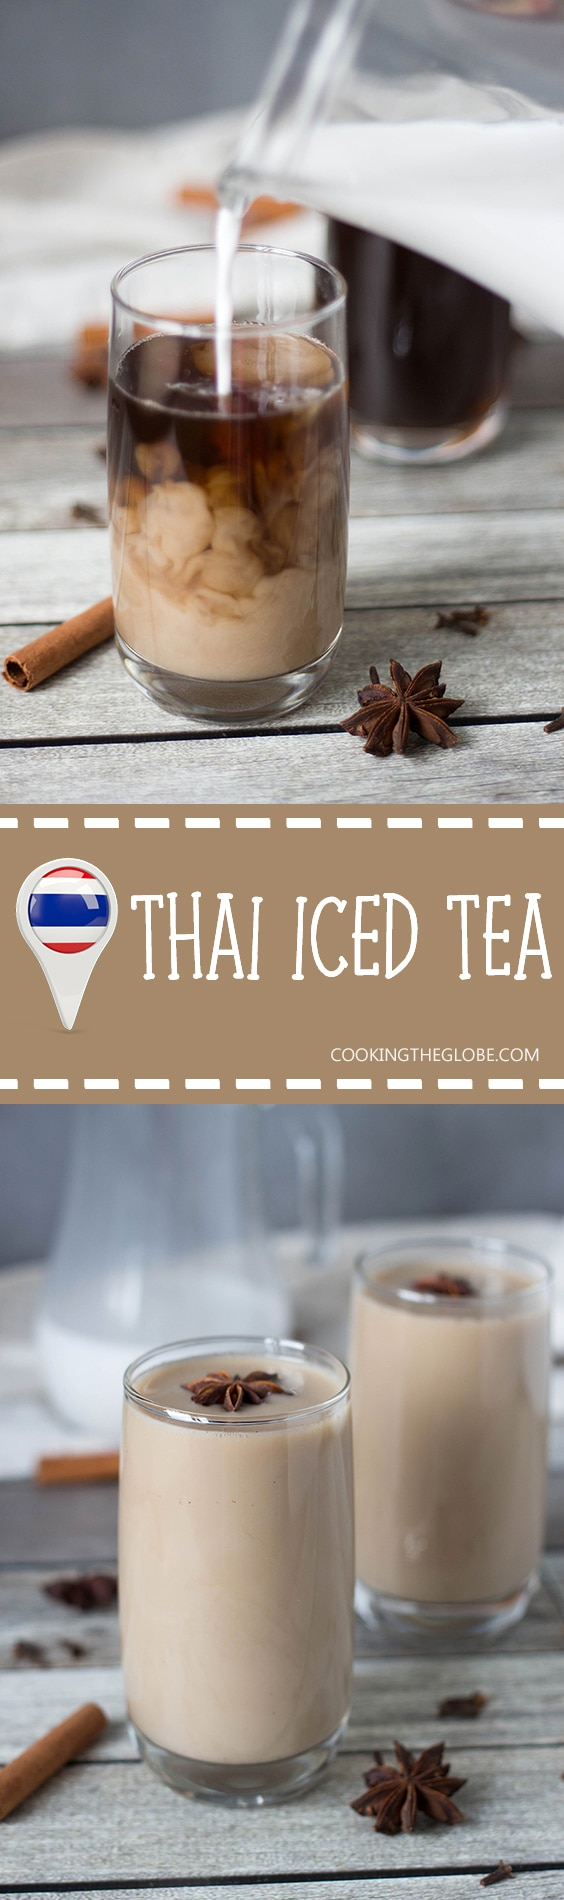 If you are looking for something refreshing and crazy delicious at the same time, this Thai Iced Tea is for you. It's flavored with anise, cinnamon, ginger, cloves, and more!   cookingtheglobe.com